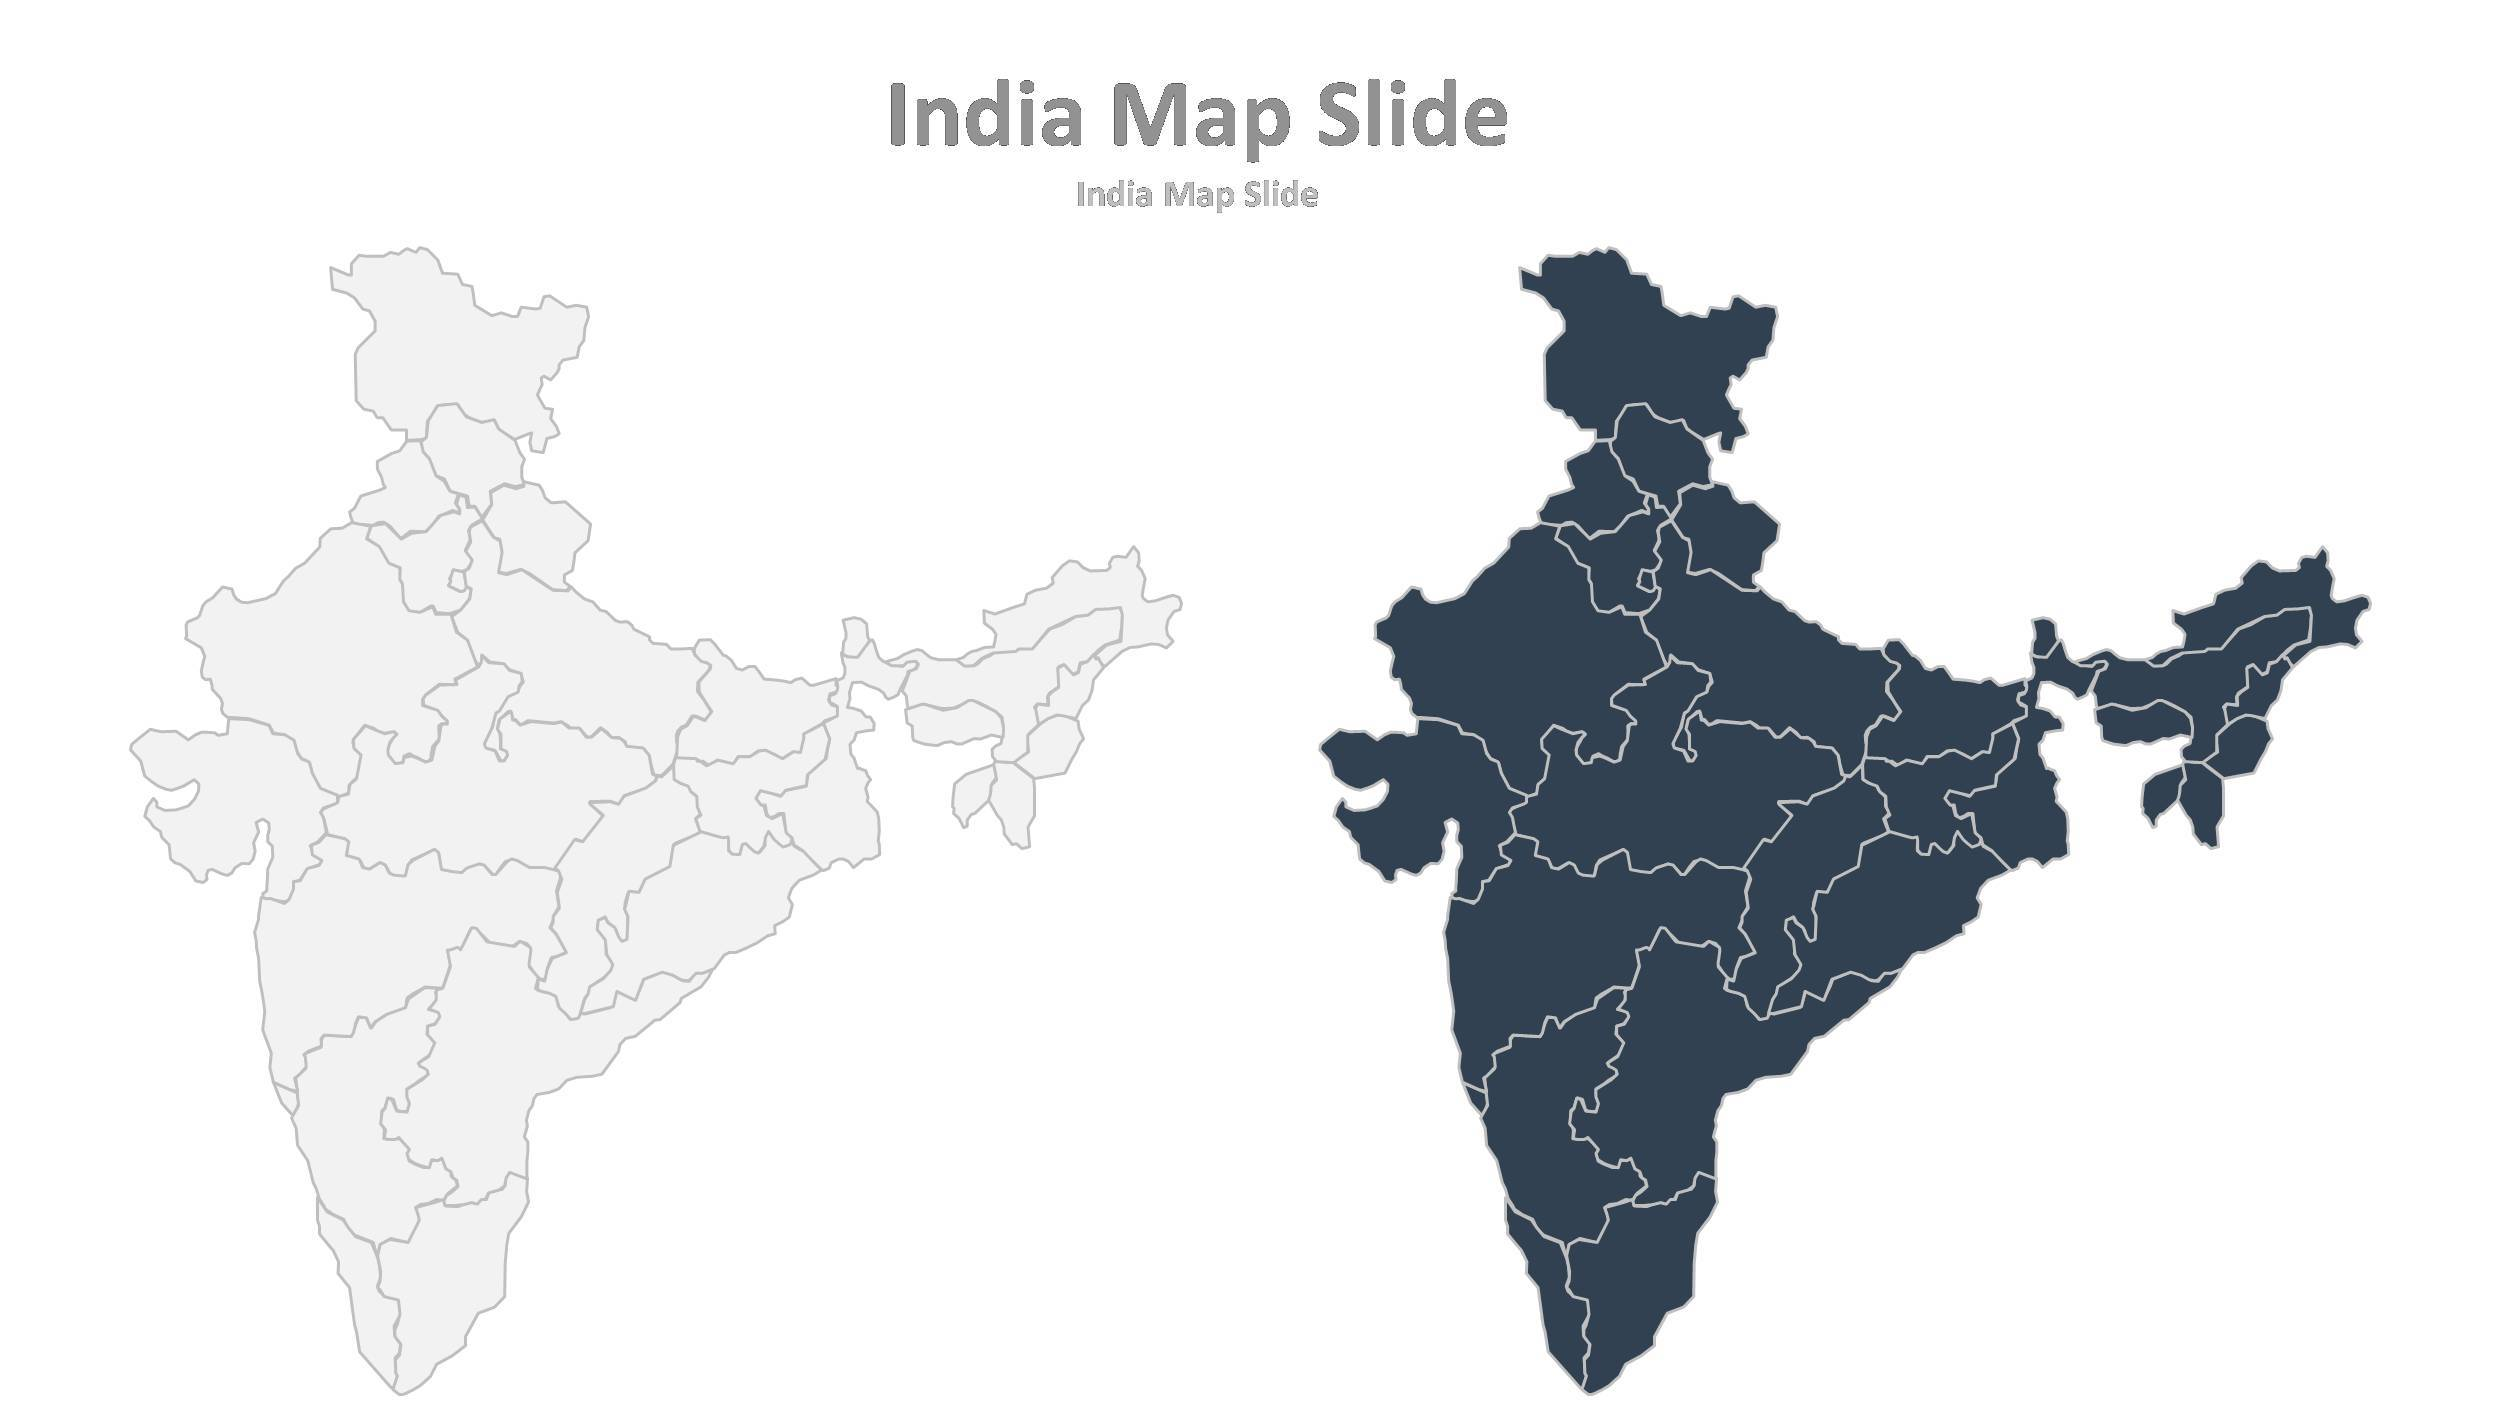 Smart solutions powerpoint presentation template by for India map ppt template